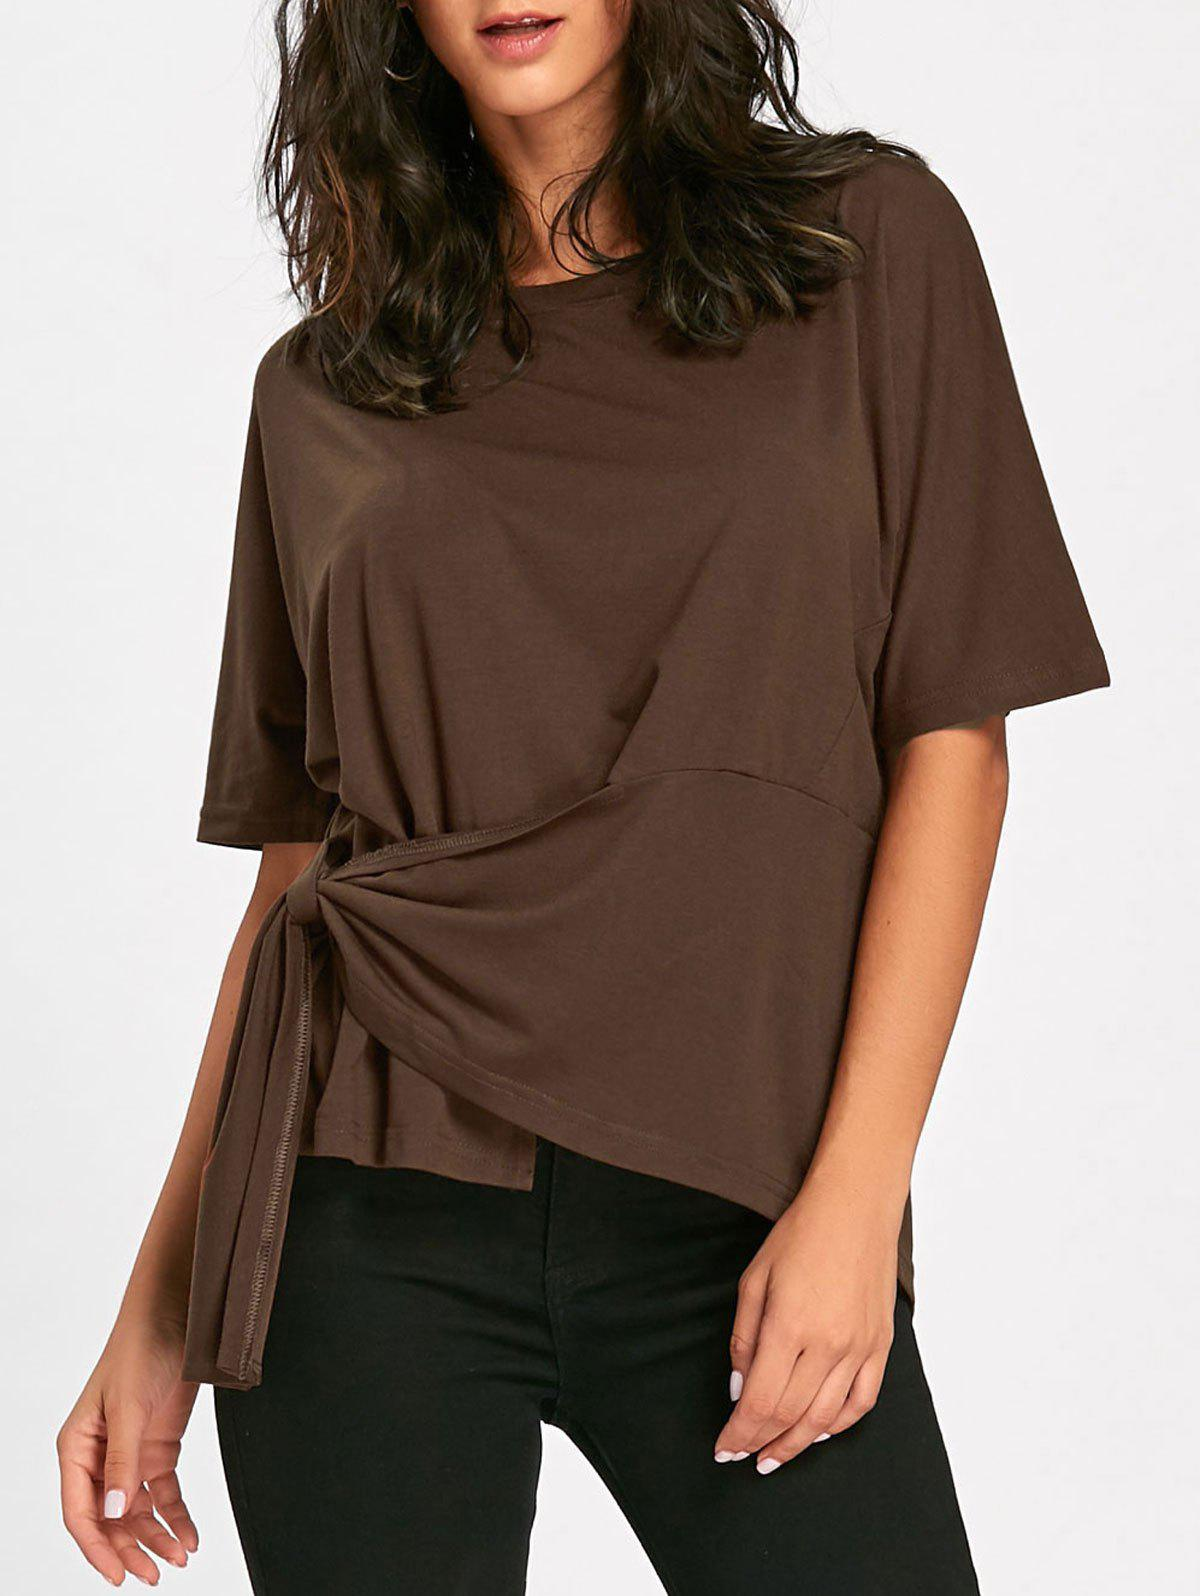 Batwing Sleeve Asymmetrical Front Tie T-shirt - BROWN XL